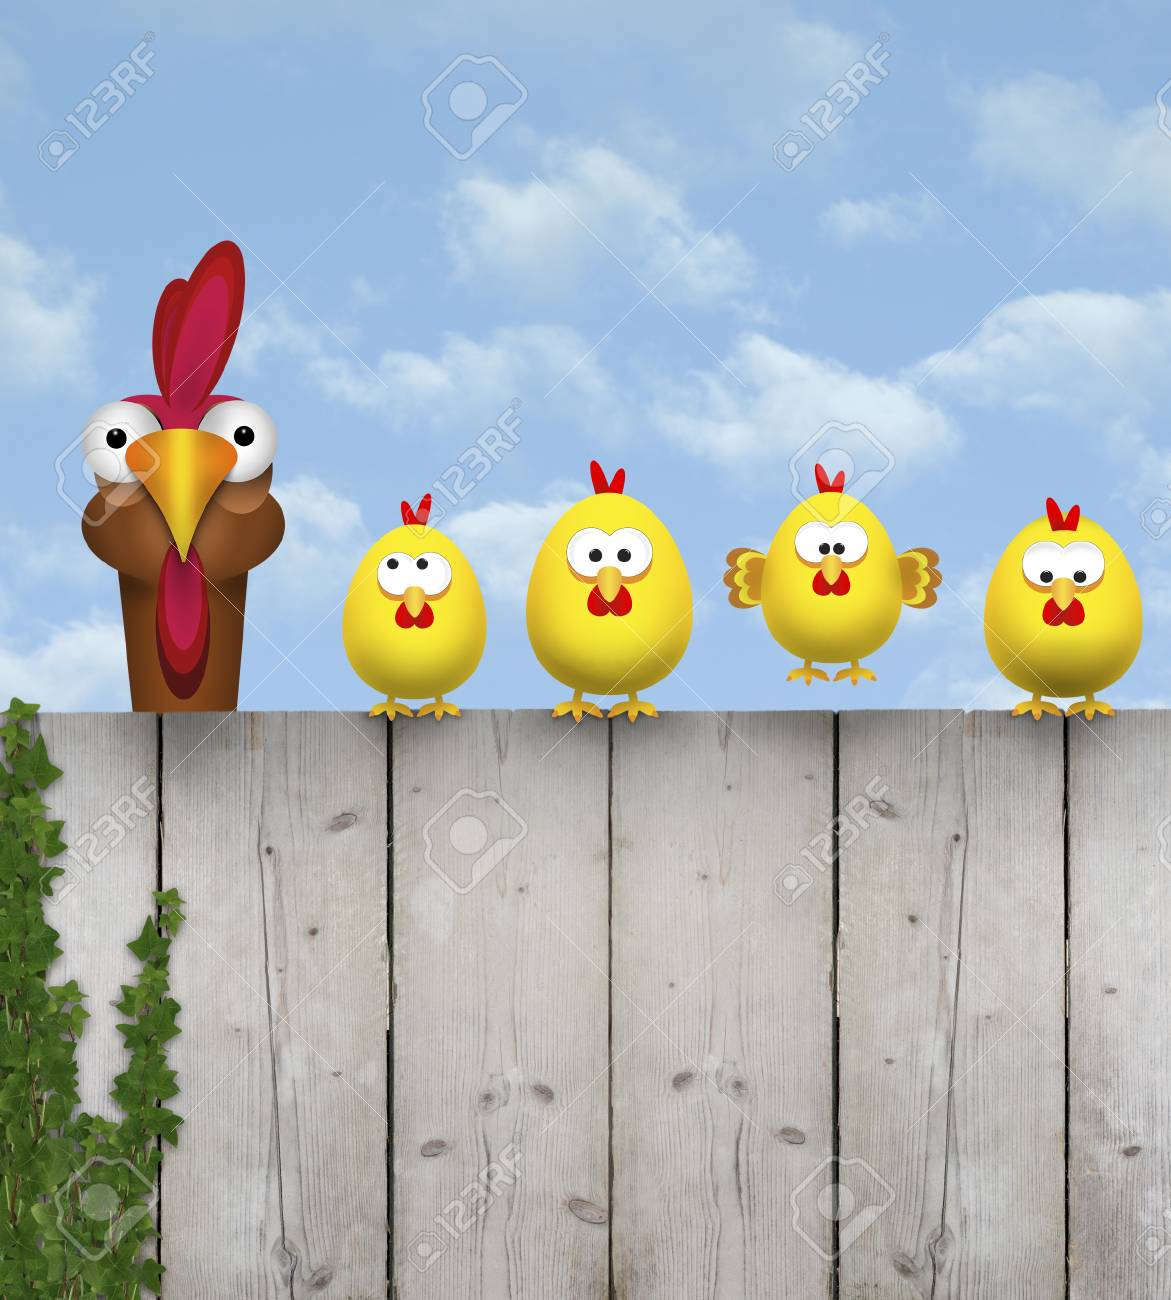 cute free range cihcken mother with her chick kids, sitting on old wooden fence, isolated on white background - 121069603